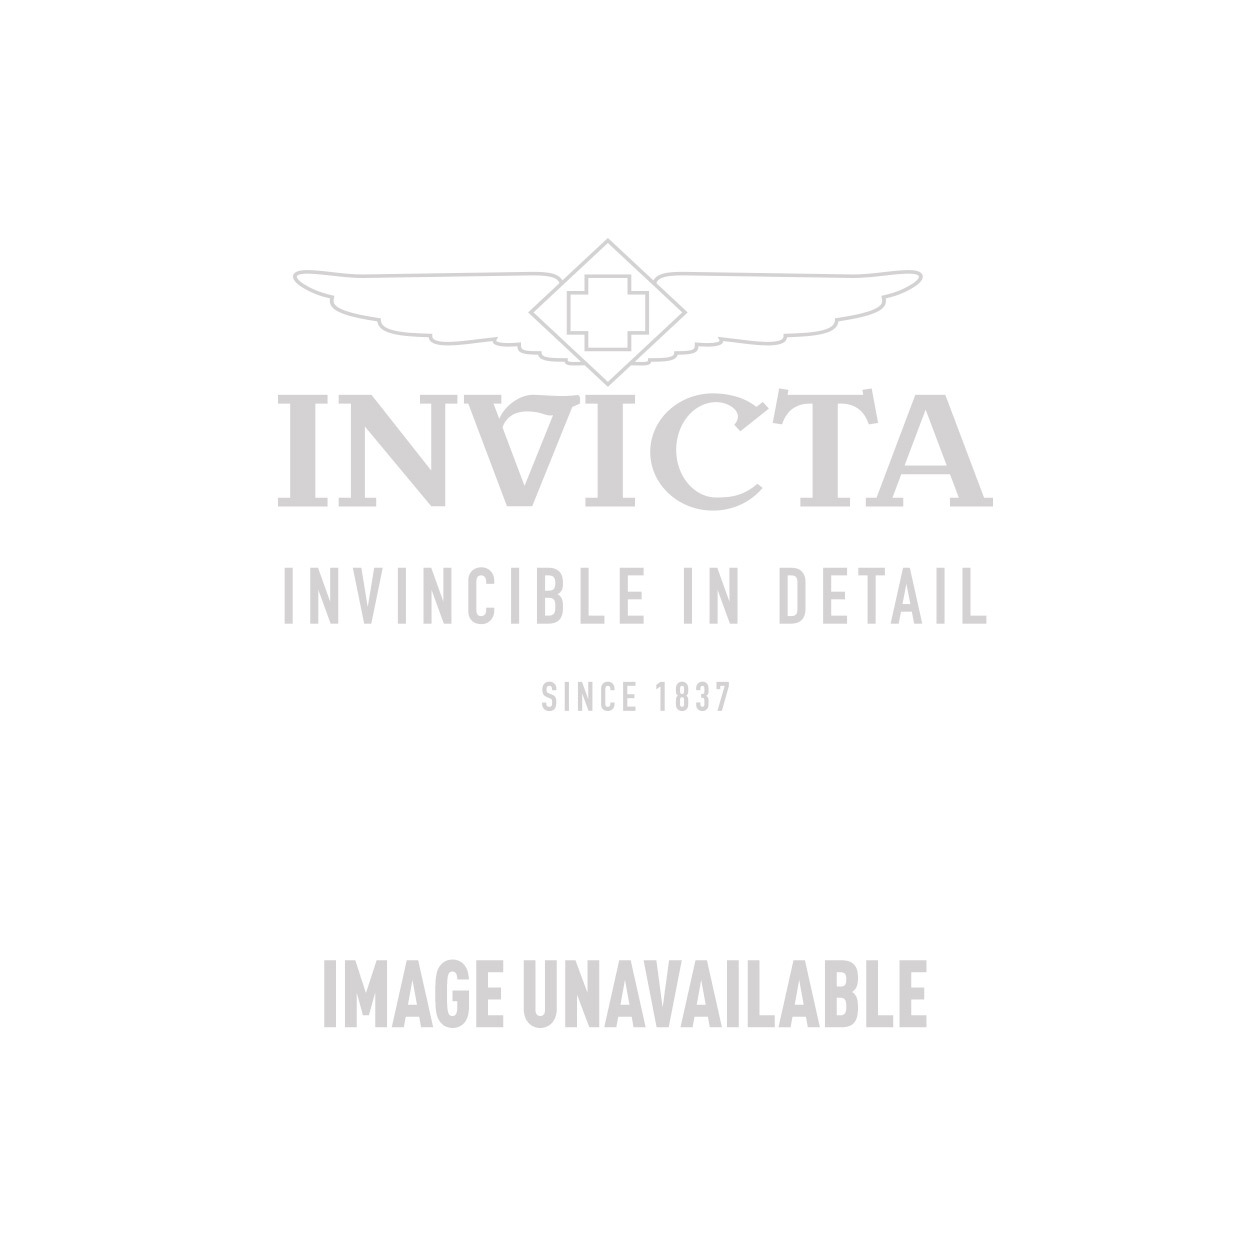 Invicta Russian Diver Swiss Made Quartz Watch - Rose Gold case with Black tone Leather band - Model 14046